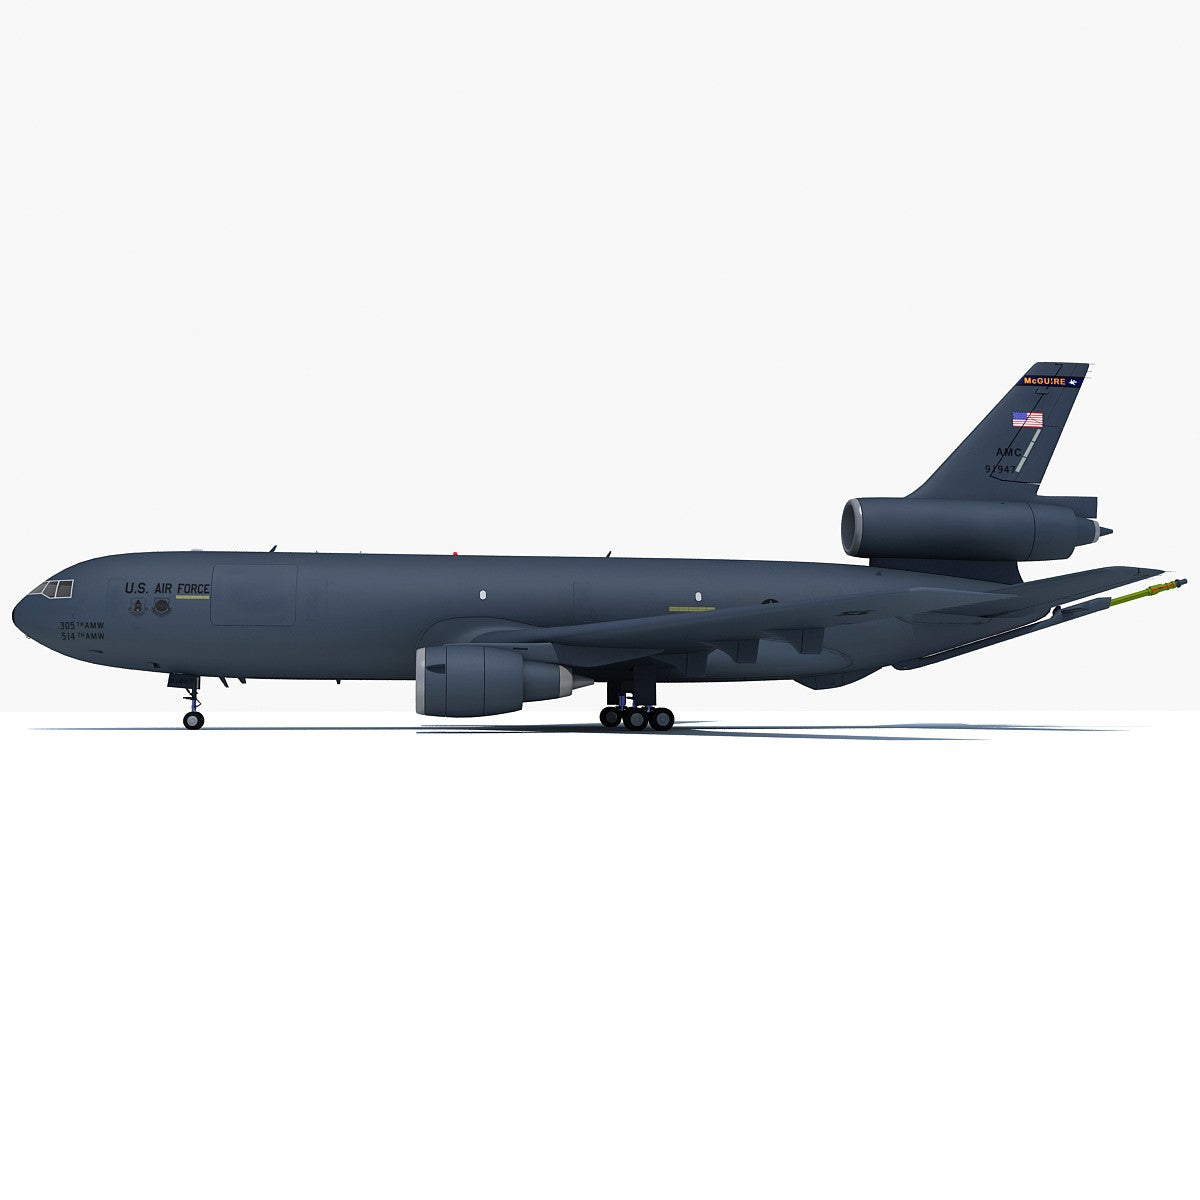 3D Extender Refueling Aircraft Model